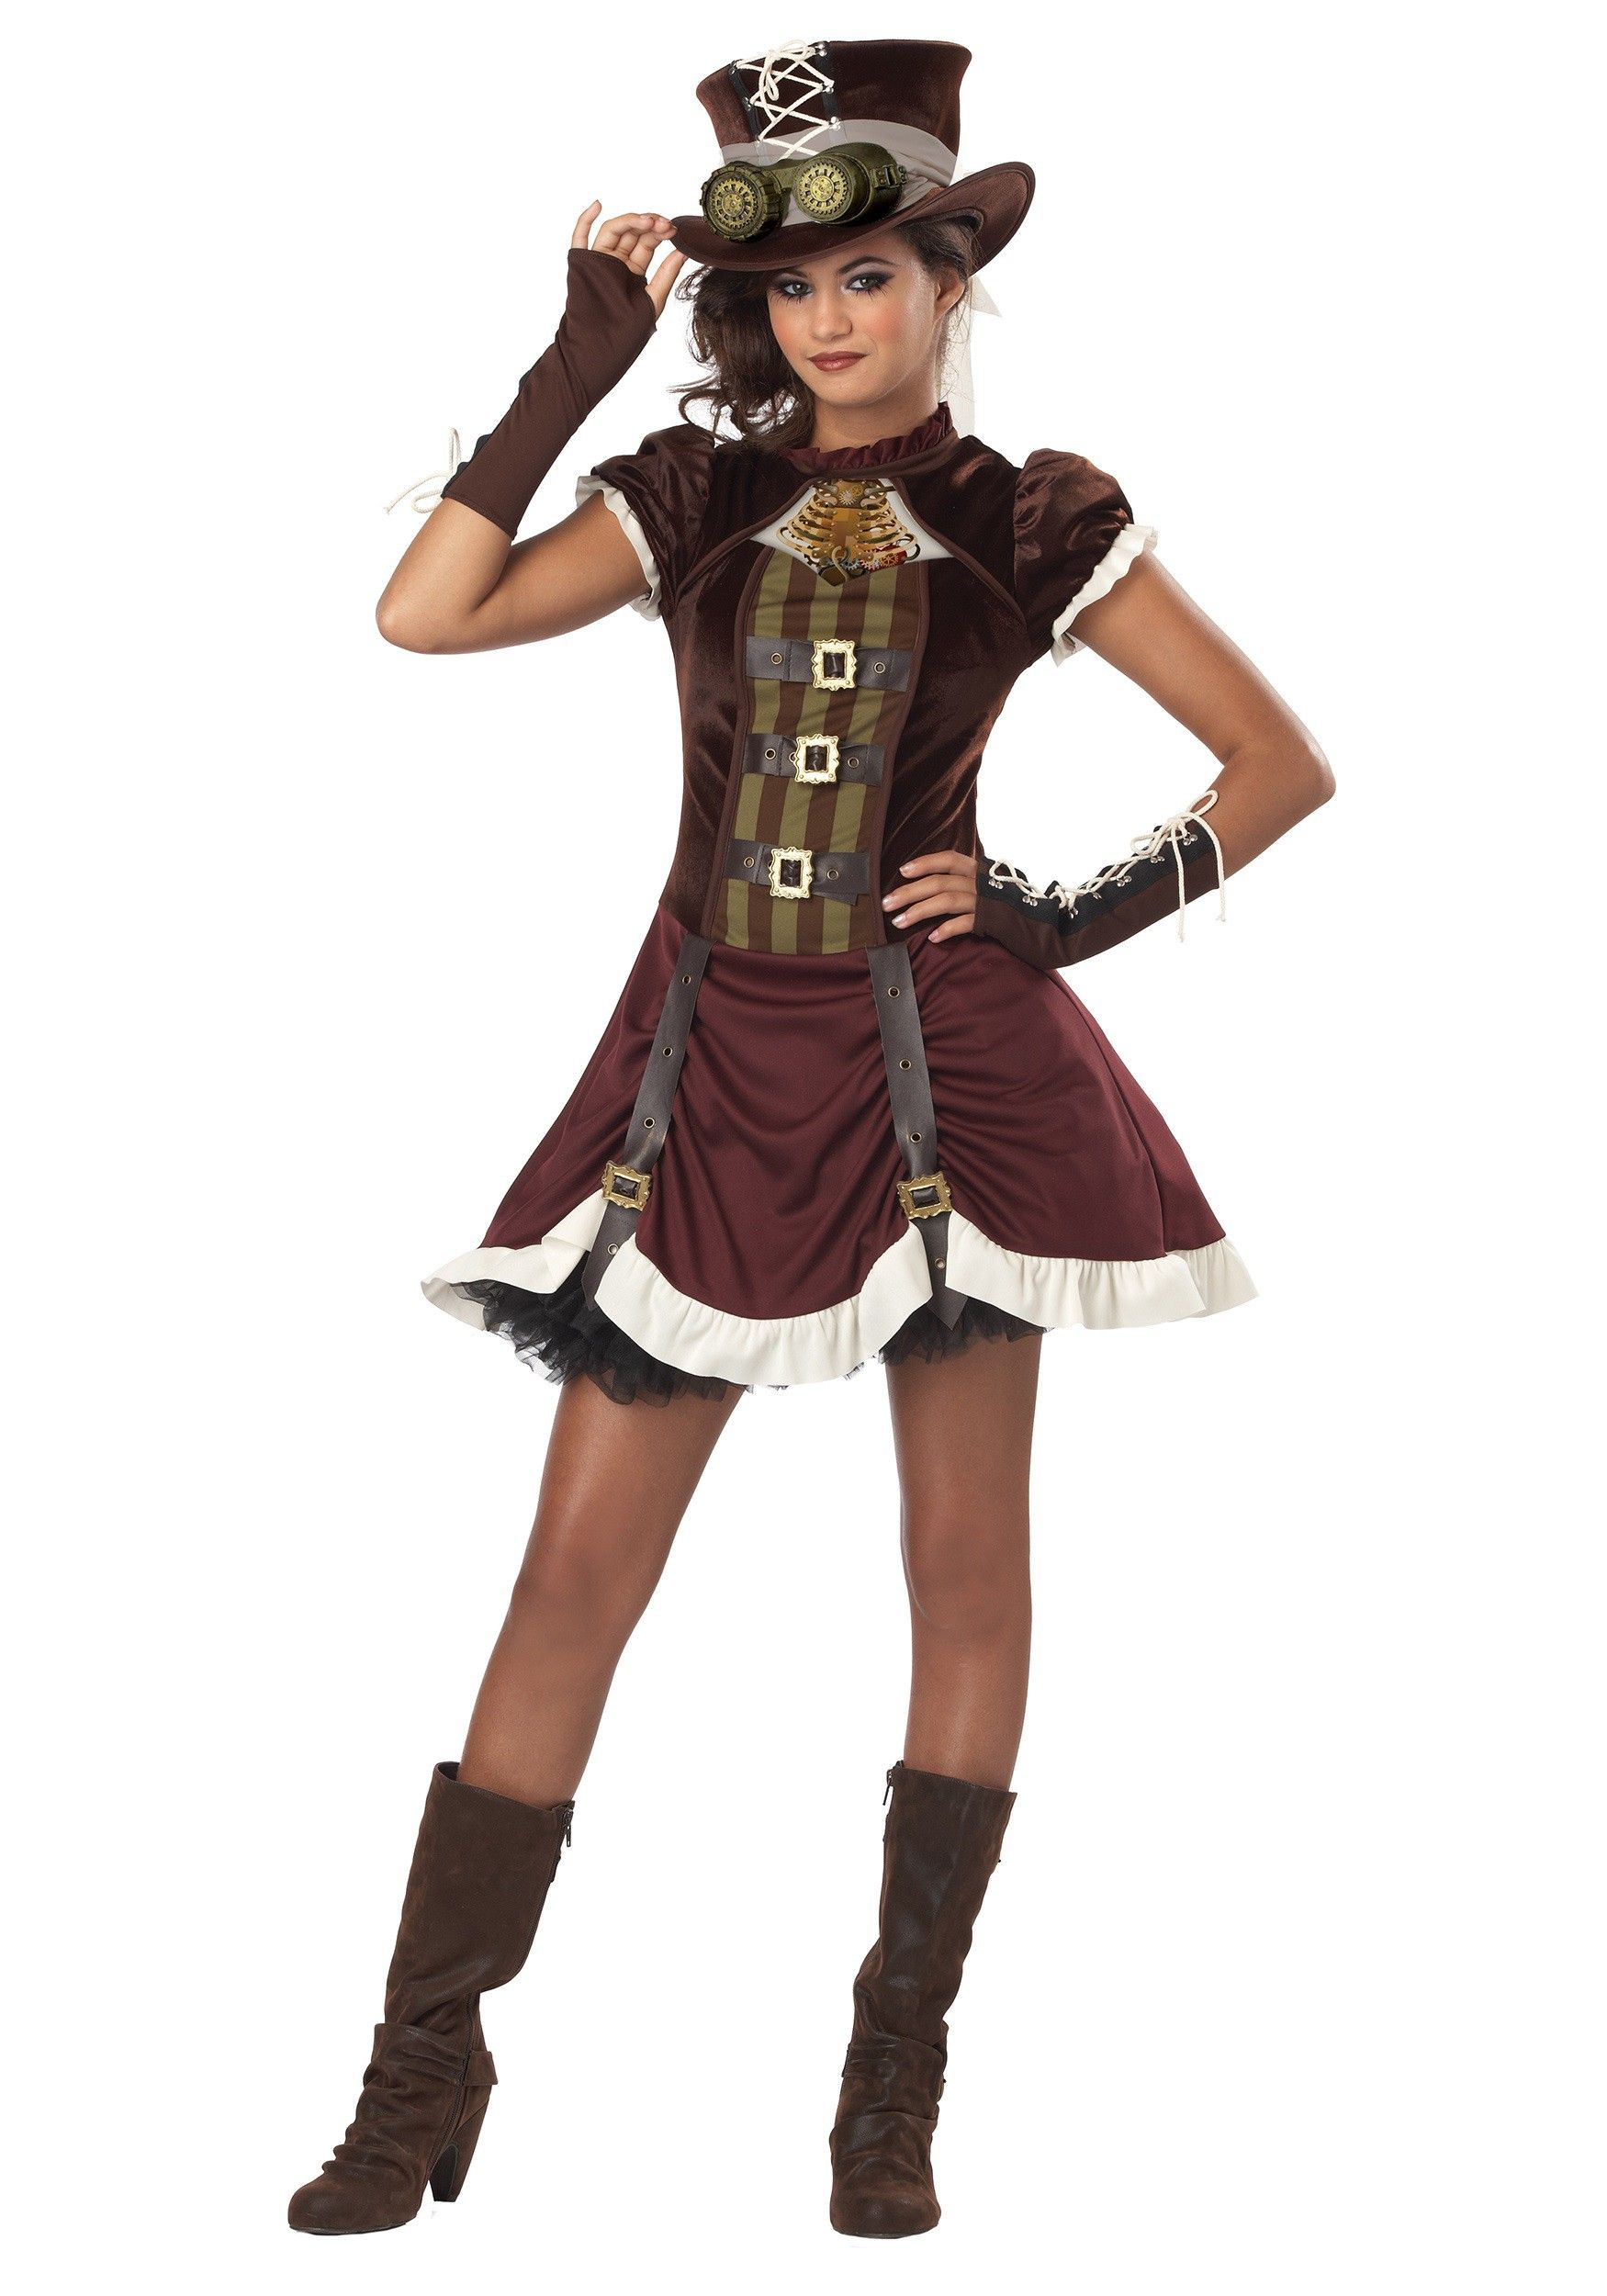 Tween Steampunk Girl Costume | Costumes, Halloween costumes and ...